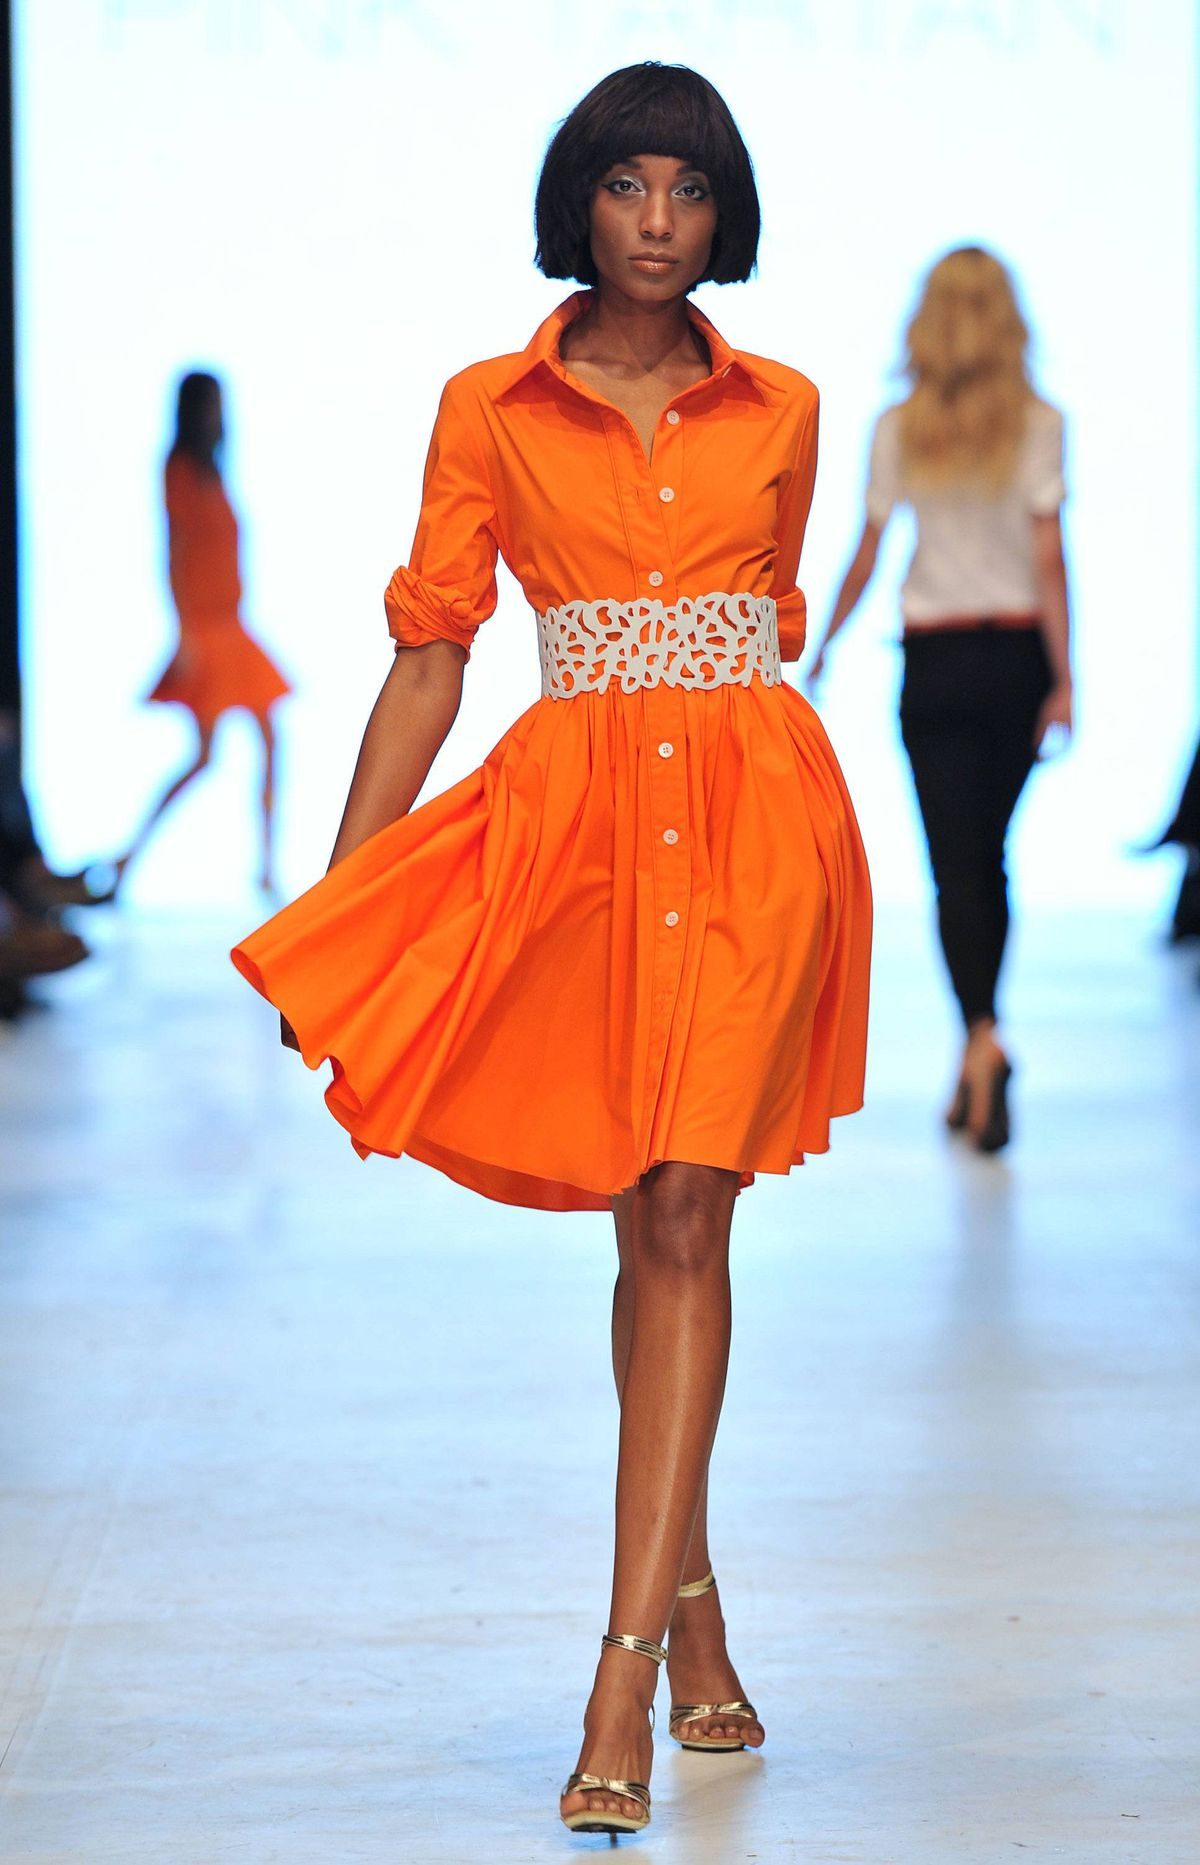 The trend carried over into the refreshed shirt dress: no more shapeless silhouettes - the spring staple got a swingy new look and was shown in marine blue and ripe-off-the-tree orange.